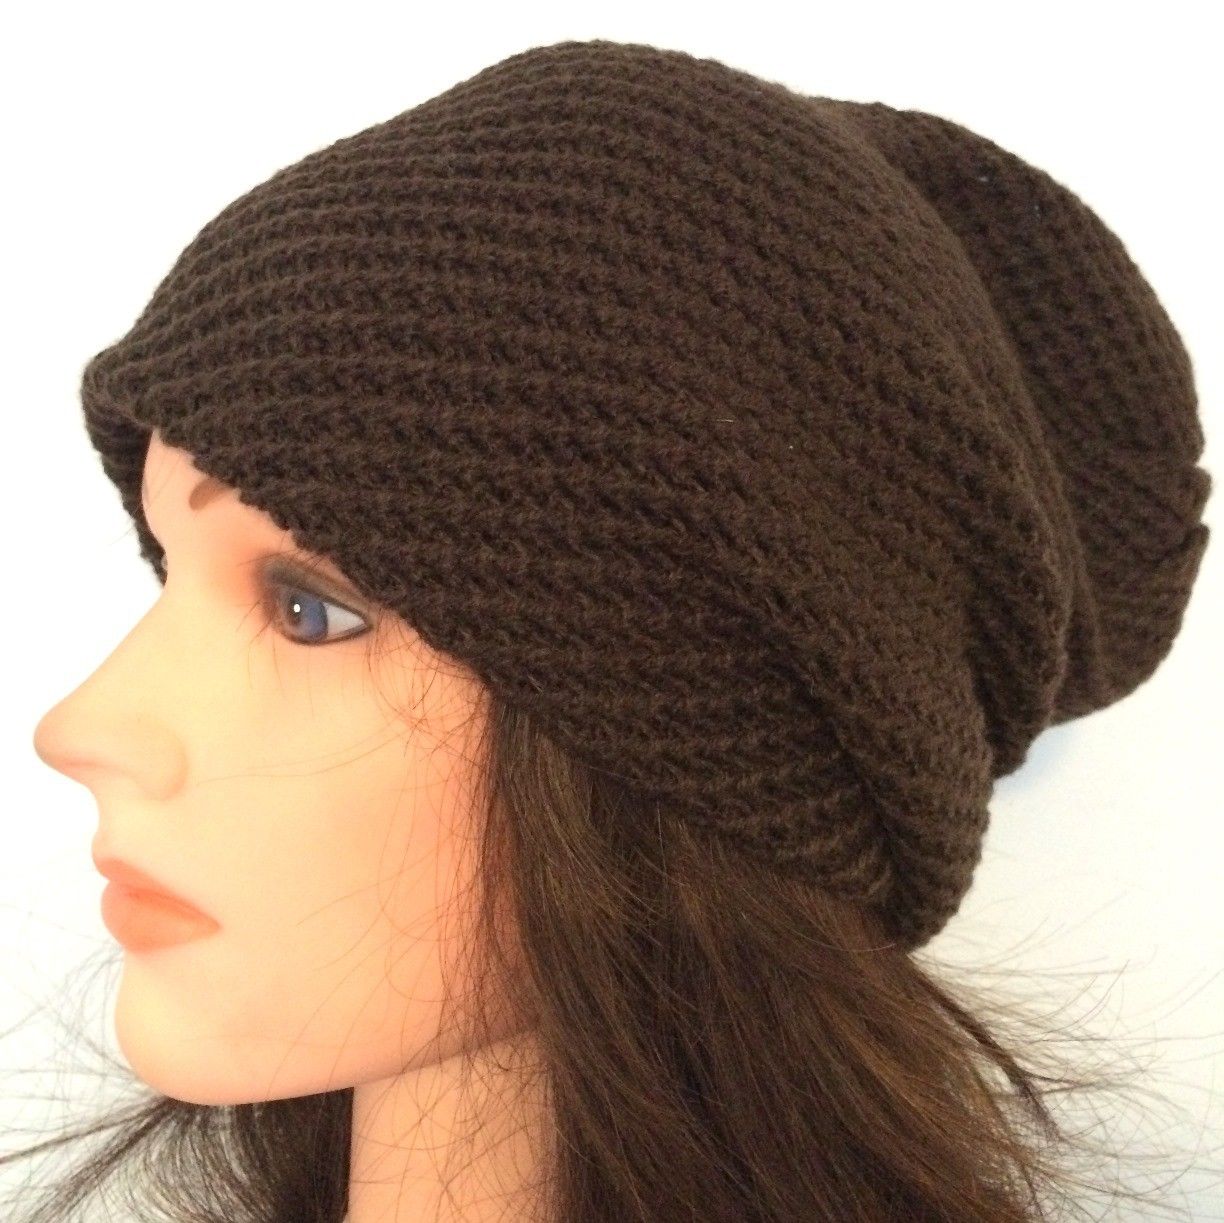 Brown slouchy hat/beret